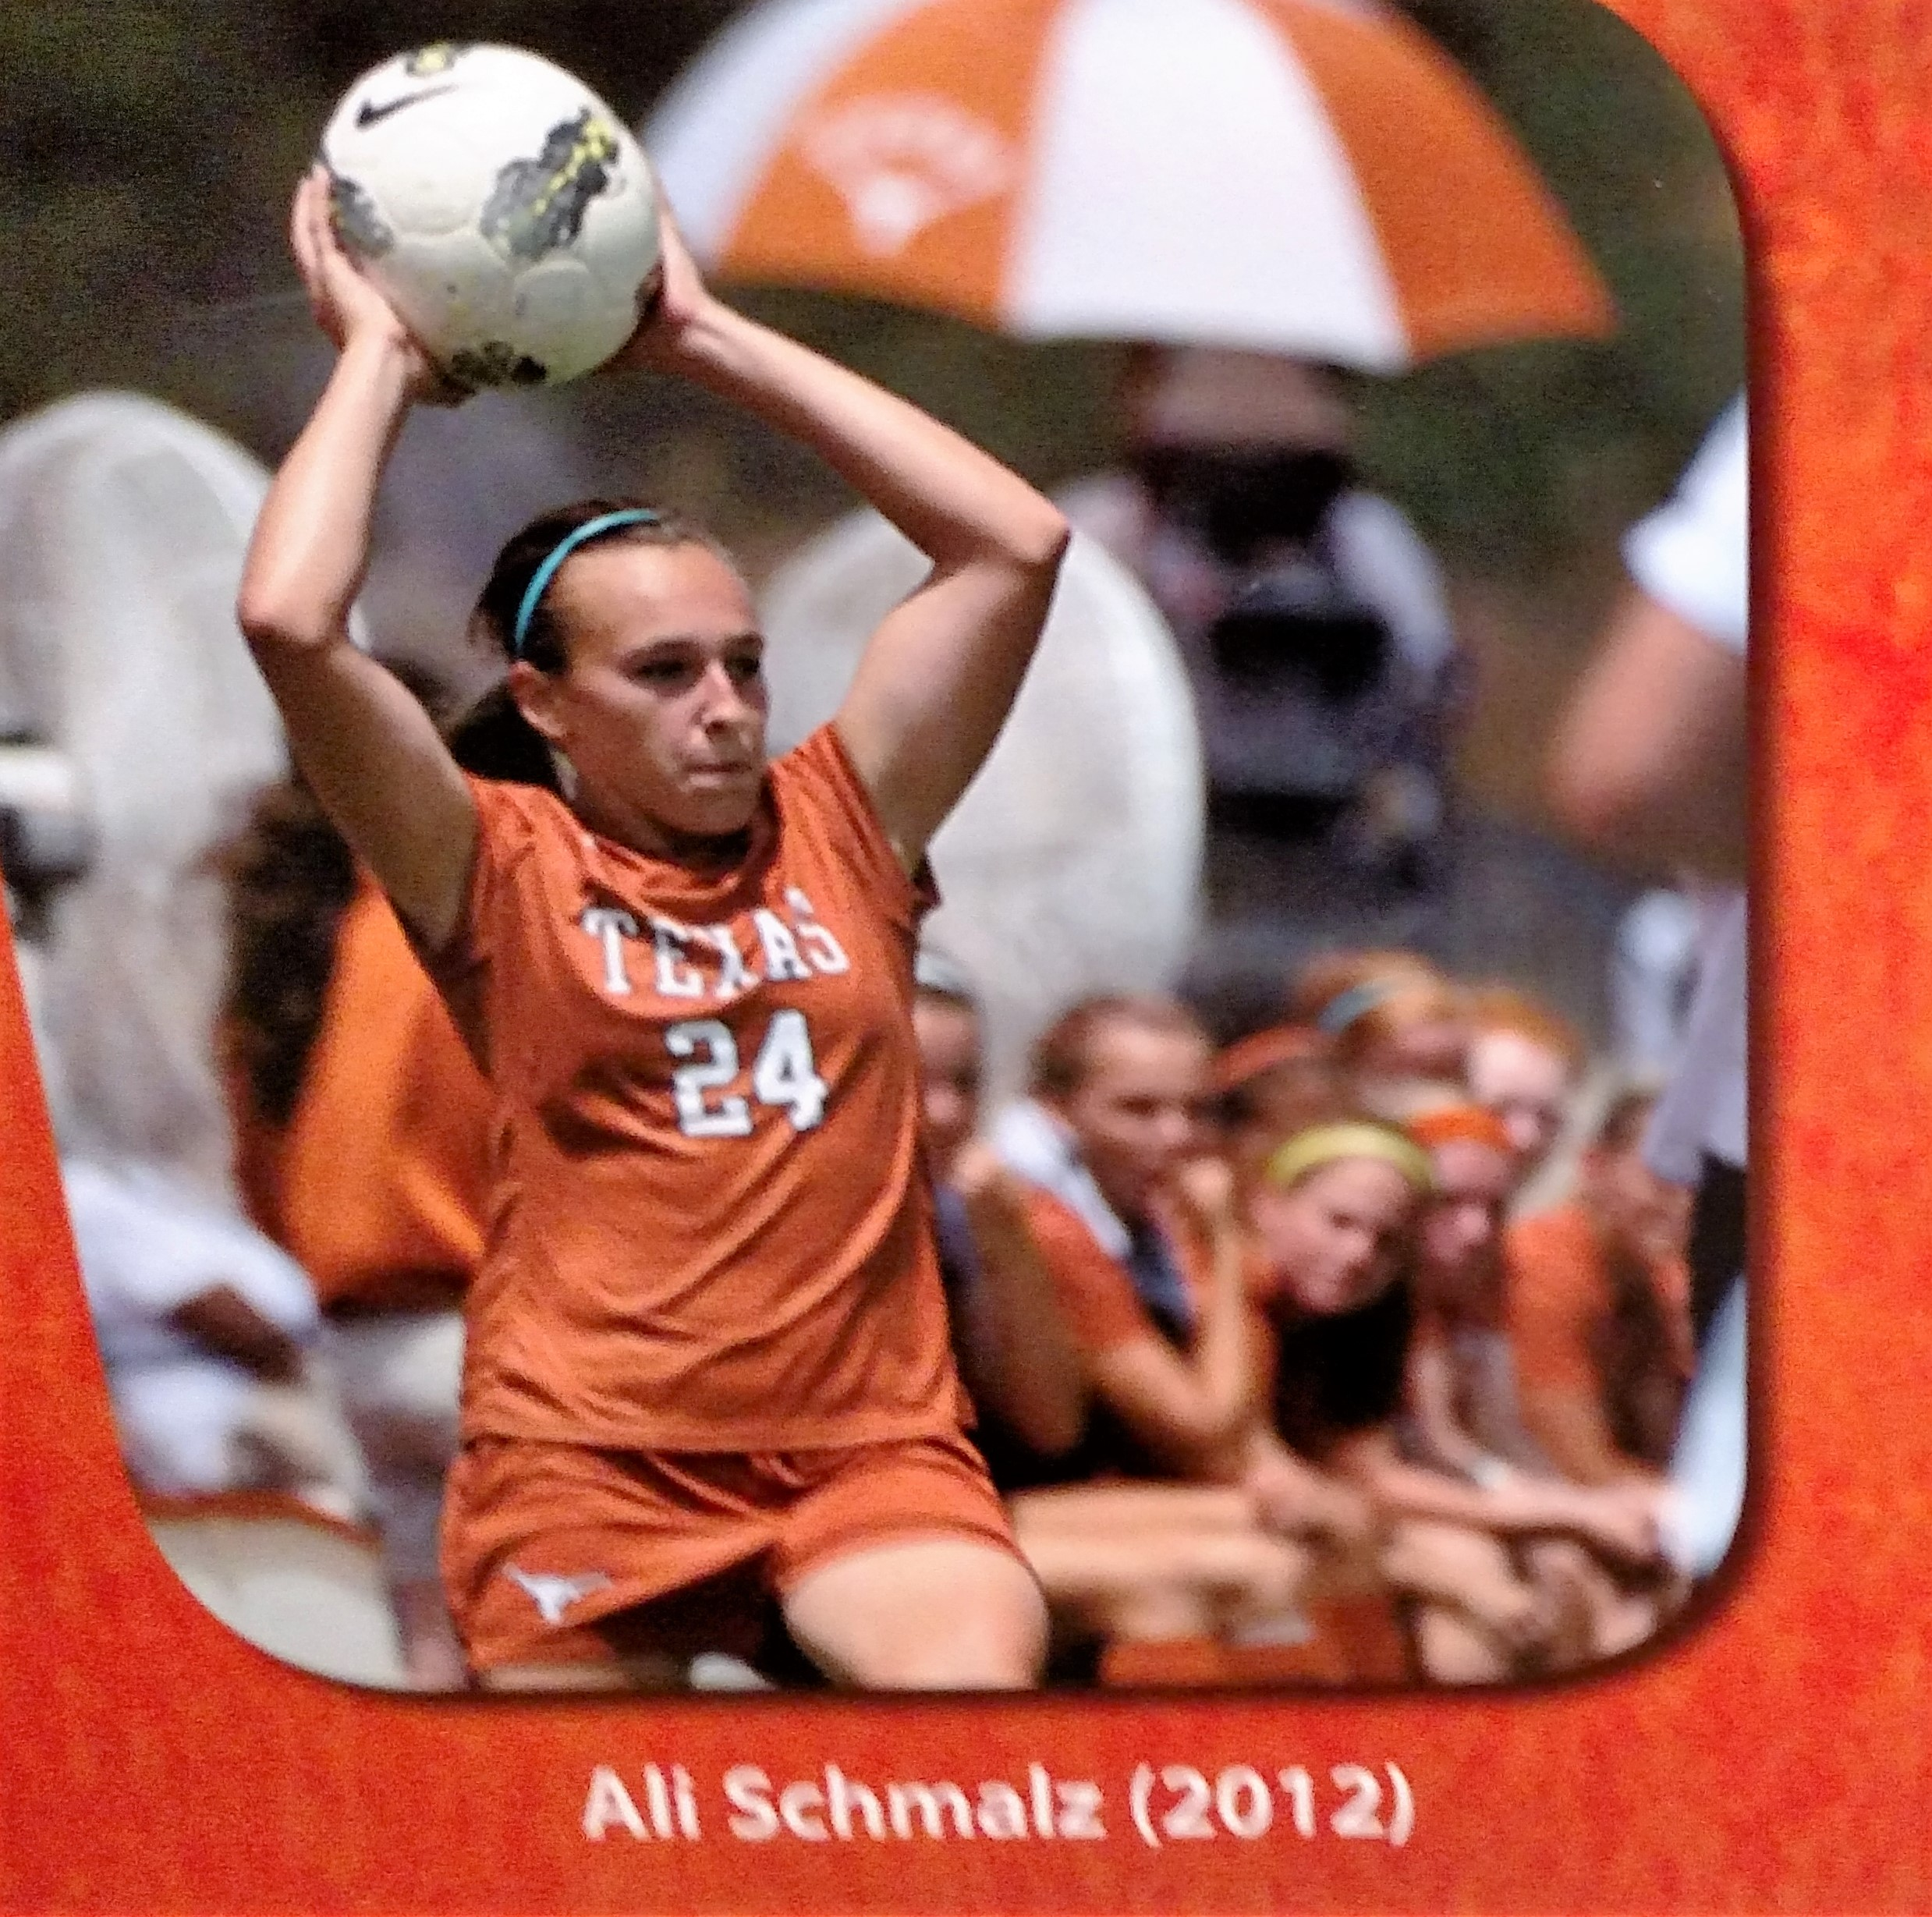 Ali Schmaultz- all newcomer team